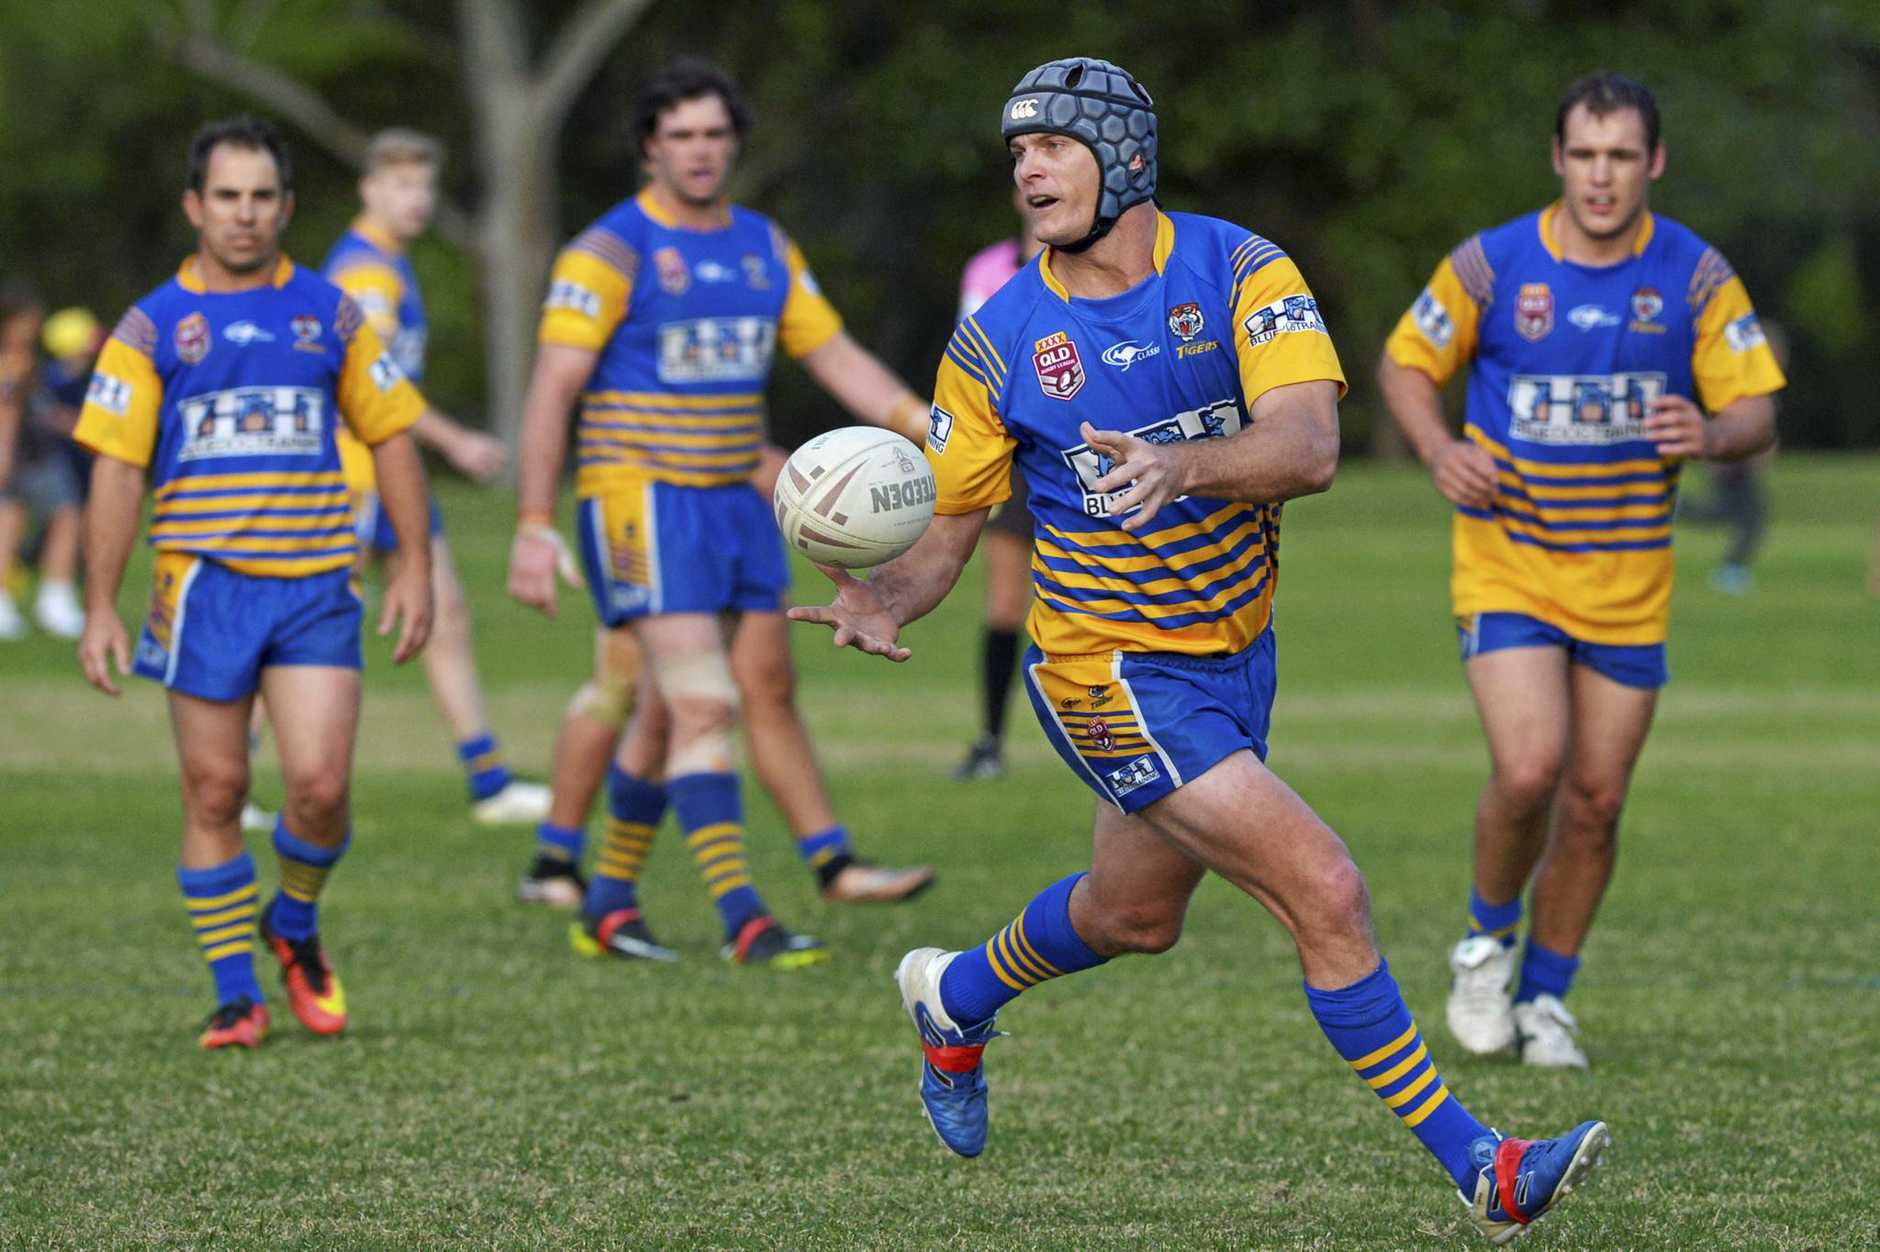 CRUEL SETBACK: Champion Norths captain Josh Roberts will be cheering his beloved Tigers on from the sidelines after breaking his leg.